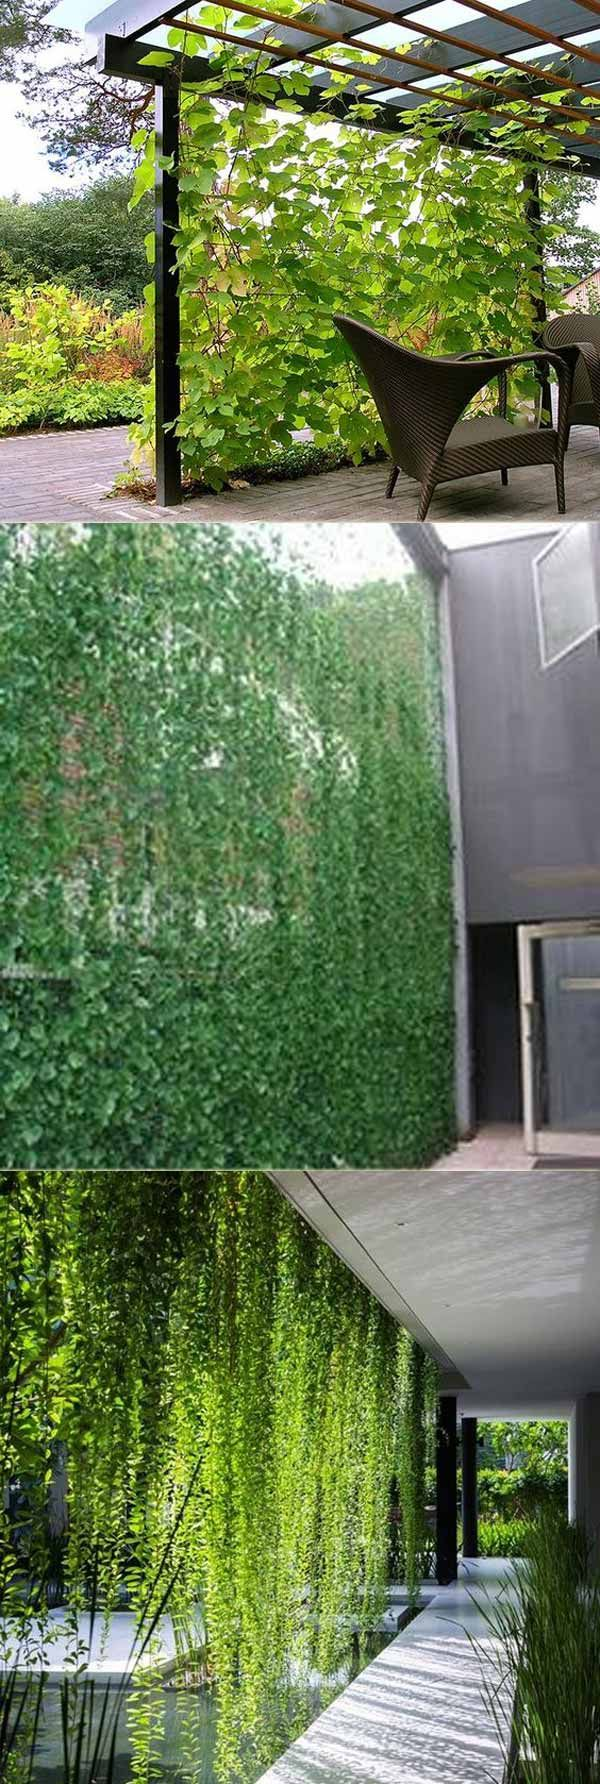 Vine Privacy Screen Can Make Your Patio Or Yard Get Privacy While